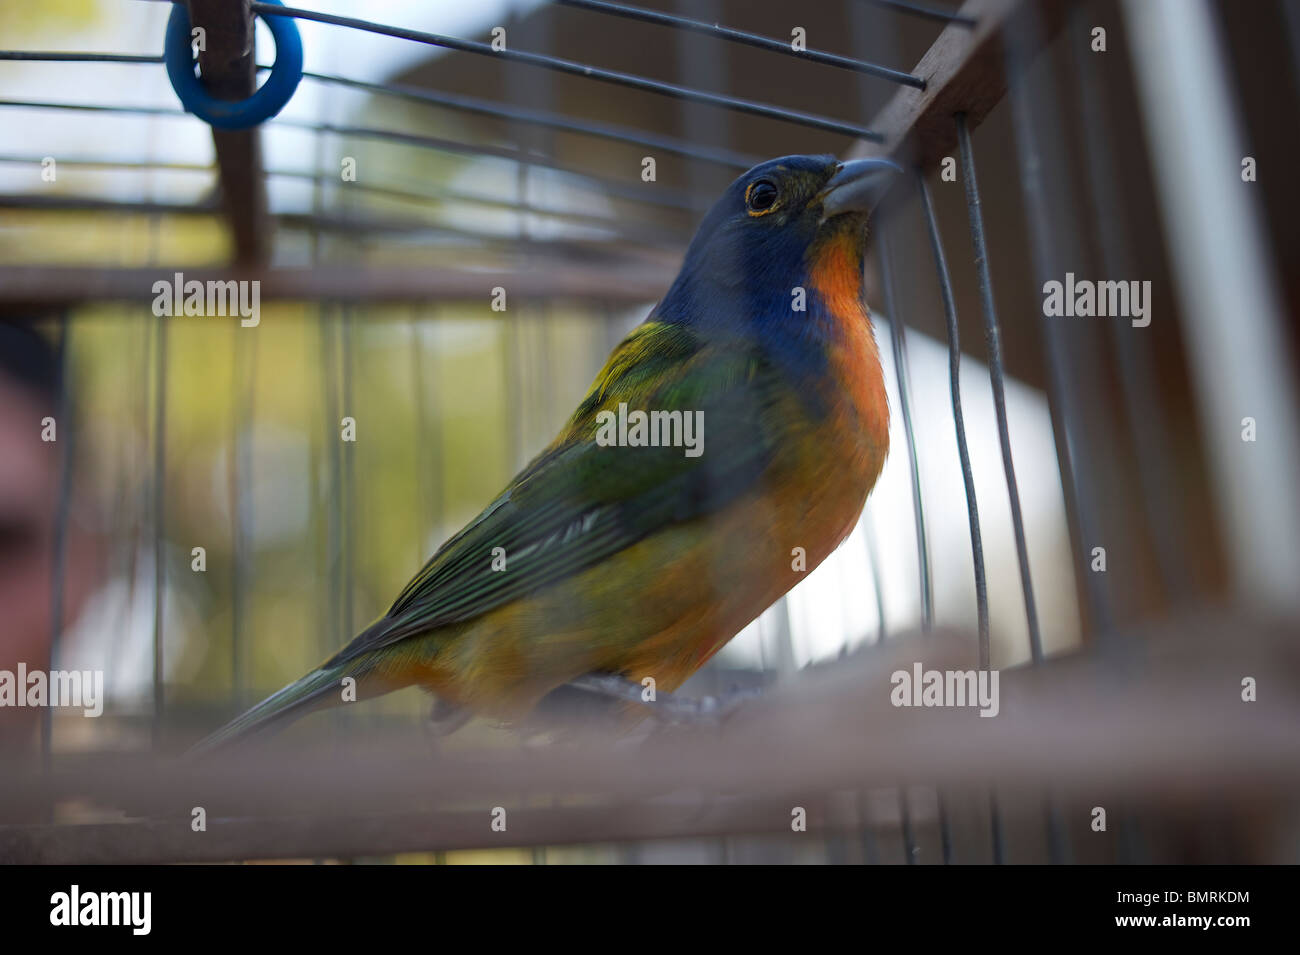 Migratory bird in cage - Stock Image